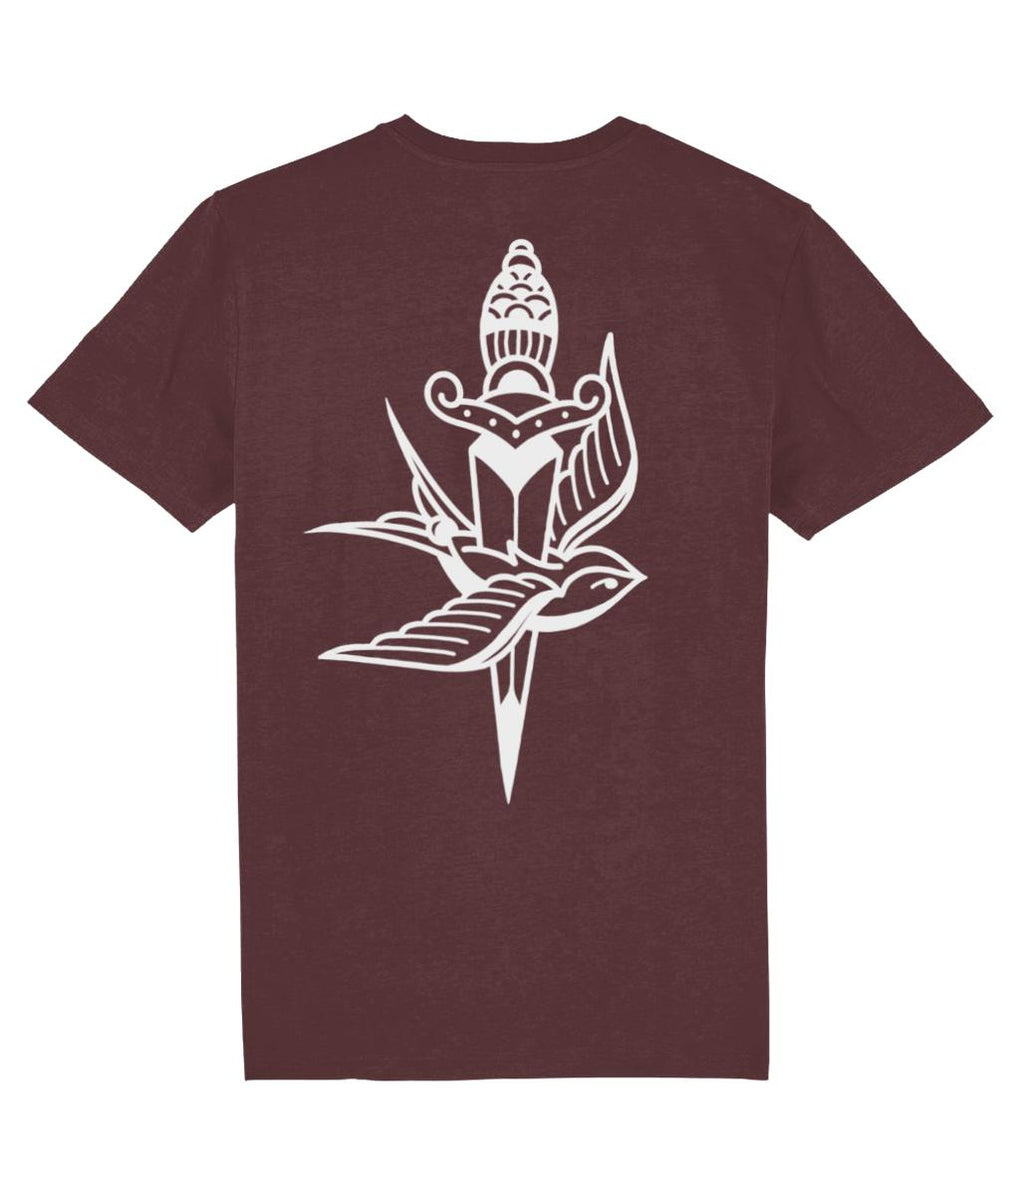 tattoo inspired T-shirt Swallow & Dagger - Black & Burgundy Tee